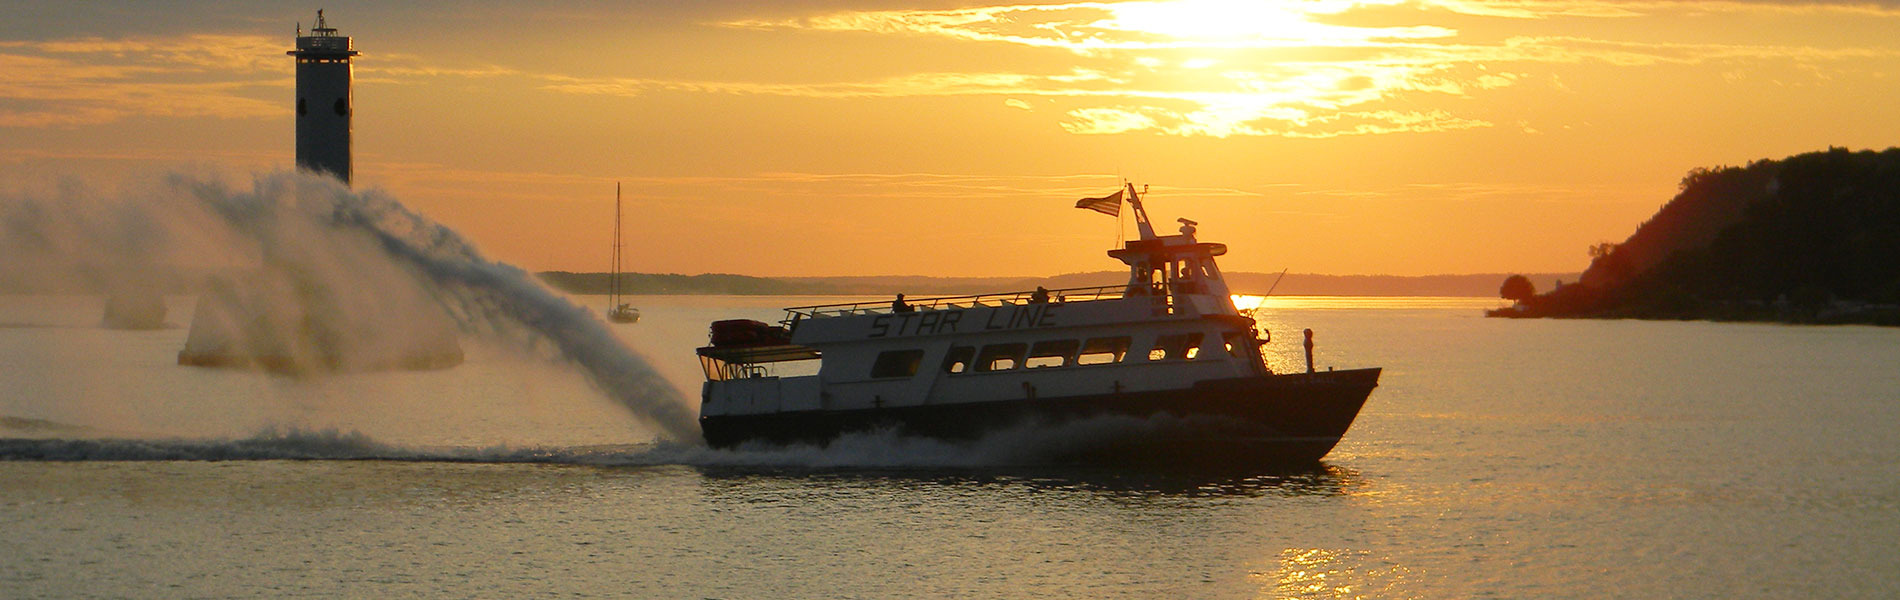 Mackinac Island Ferry Coupon Codes - zooland-fm.ml FREE Get Deal Save money on things you want with a Mackinac Island Ferry promo code or coupon. 3 Mackinac Island Ferry coupons Line Ferry Information for The Arnold.